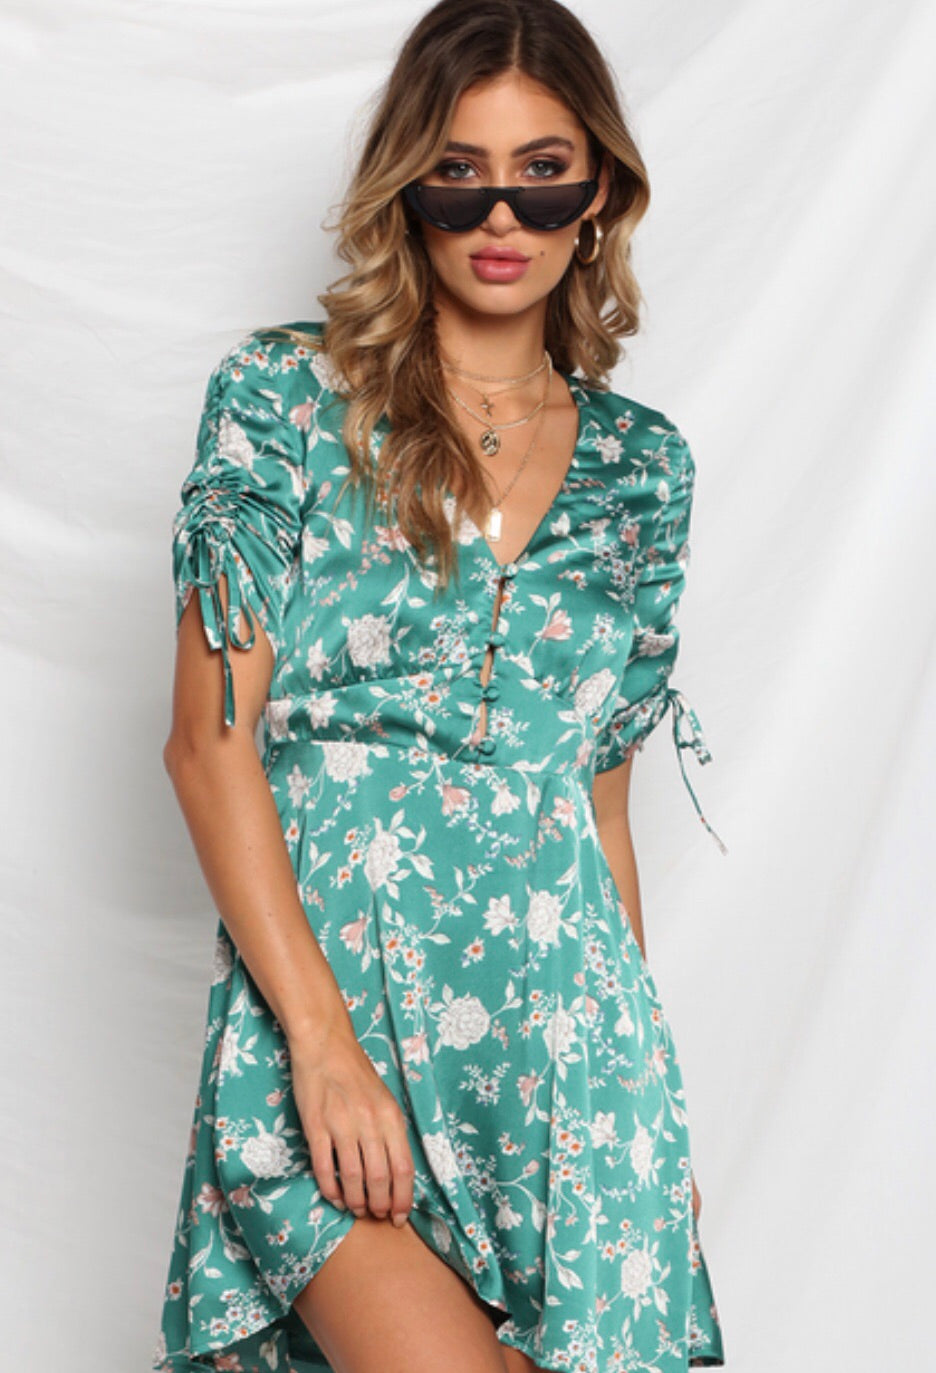 Gwendolyn emerald floral dress